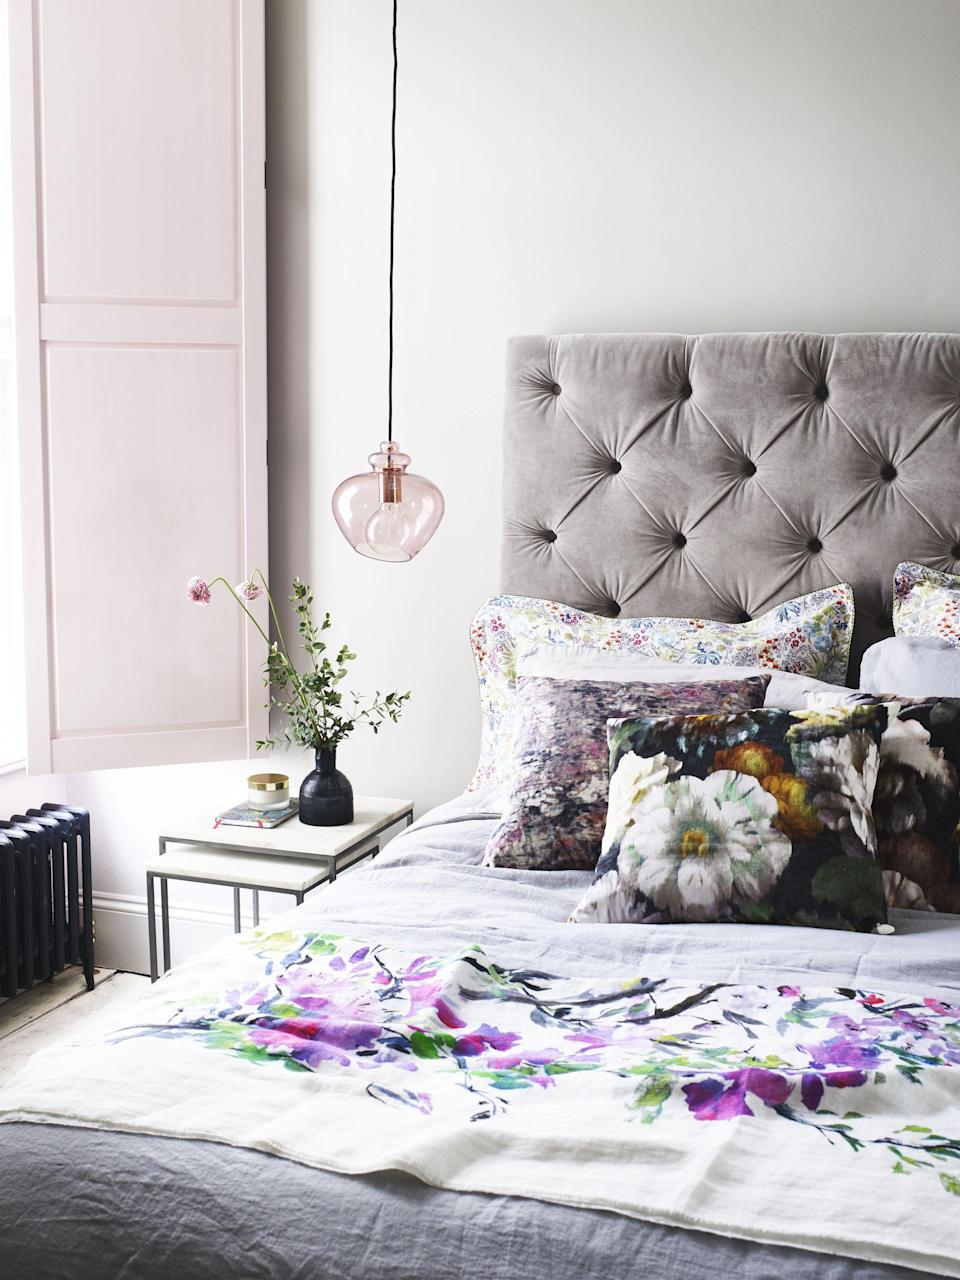 """<p><strong>Looking for pink and </strong><strong>grey <a href=""""https://www.housebeautiful.com/uk/decorate/bedroom/g31/bedroom-decorating-ideas/"""" rel=""""nofollow noopener"""" target=""""_blank"""" data-ylk=""""slk:bedroom"""" class=""""link rapid-noclick-resp"""">bedroom</a> ideas</strong><strong>? A comforting colour combination, it's a sophisticated </strong><strong>scheme that feels incredibly grown-up in <strong>master suites, children's bedrooms and guest bedrooms, too</strong>. </strong></p><p>Whether you're dreaming of pink <a href=""""https://www.housebeautiful.com/uk/decorate/living-room/g32357518/living-room-accessories/"""" rel=""""nofollow noopener"""" target=""""_blank"""" data-ylk=""""slk:accessories"""" class=""""link rapid-noclick-resp"""">accessories</a> or want to refresh <a href=""""https://www.housebeautiful.com/uk/decorate/walls/g28883214/wall-decor/"""" rel=""""nofollow noopener"""" target=""""_blank"""" data-ylk=""""slk:walls"""" class=""""link rapid-noclick-resp"""">walls</a> with a lick of grey paint, this versatile duo is the way to go (and the options are endless). Subtle use of pink can bring warmth to a room, while soft grey will make any space feel timeless. </p><p>If you're feeling bold, opt for a pink feature wall. For something less daring, paint a piece of your bedroom furniture dark grey and throw some matching cushions on your bed. And don't just think about the walls, you can introduce pink and grey with a bed, wardrobes, soft furnishings, blinds and curtains, too.<br></p><p>Here's how to nail a pink and grey bedroom colour scheme in your home.</p>"""